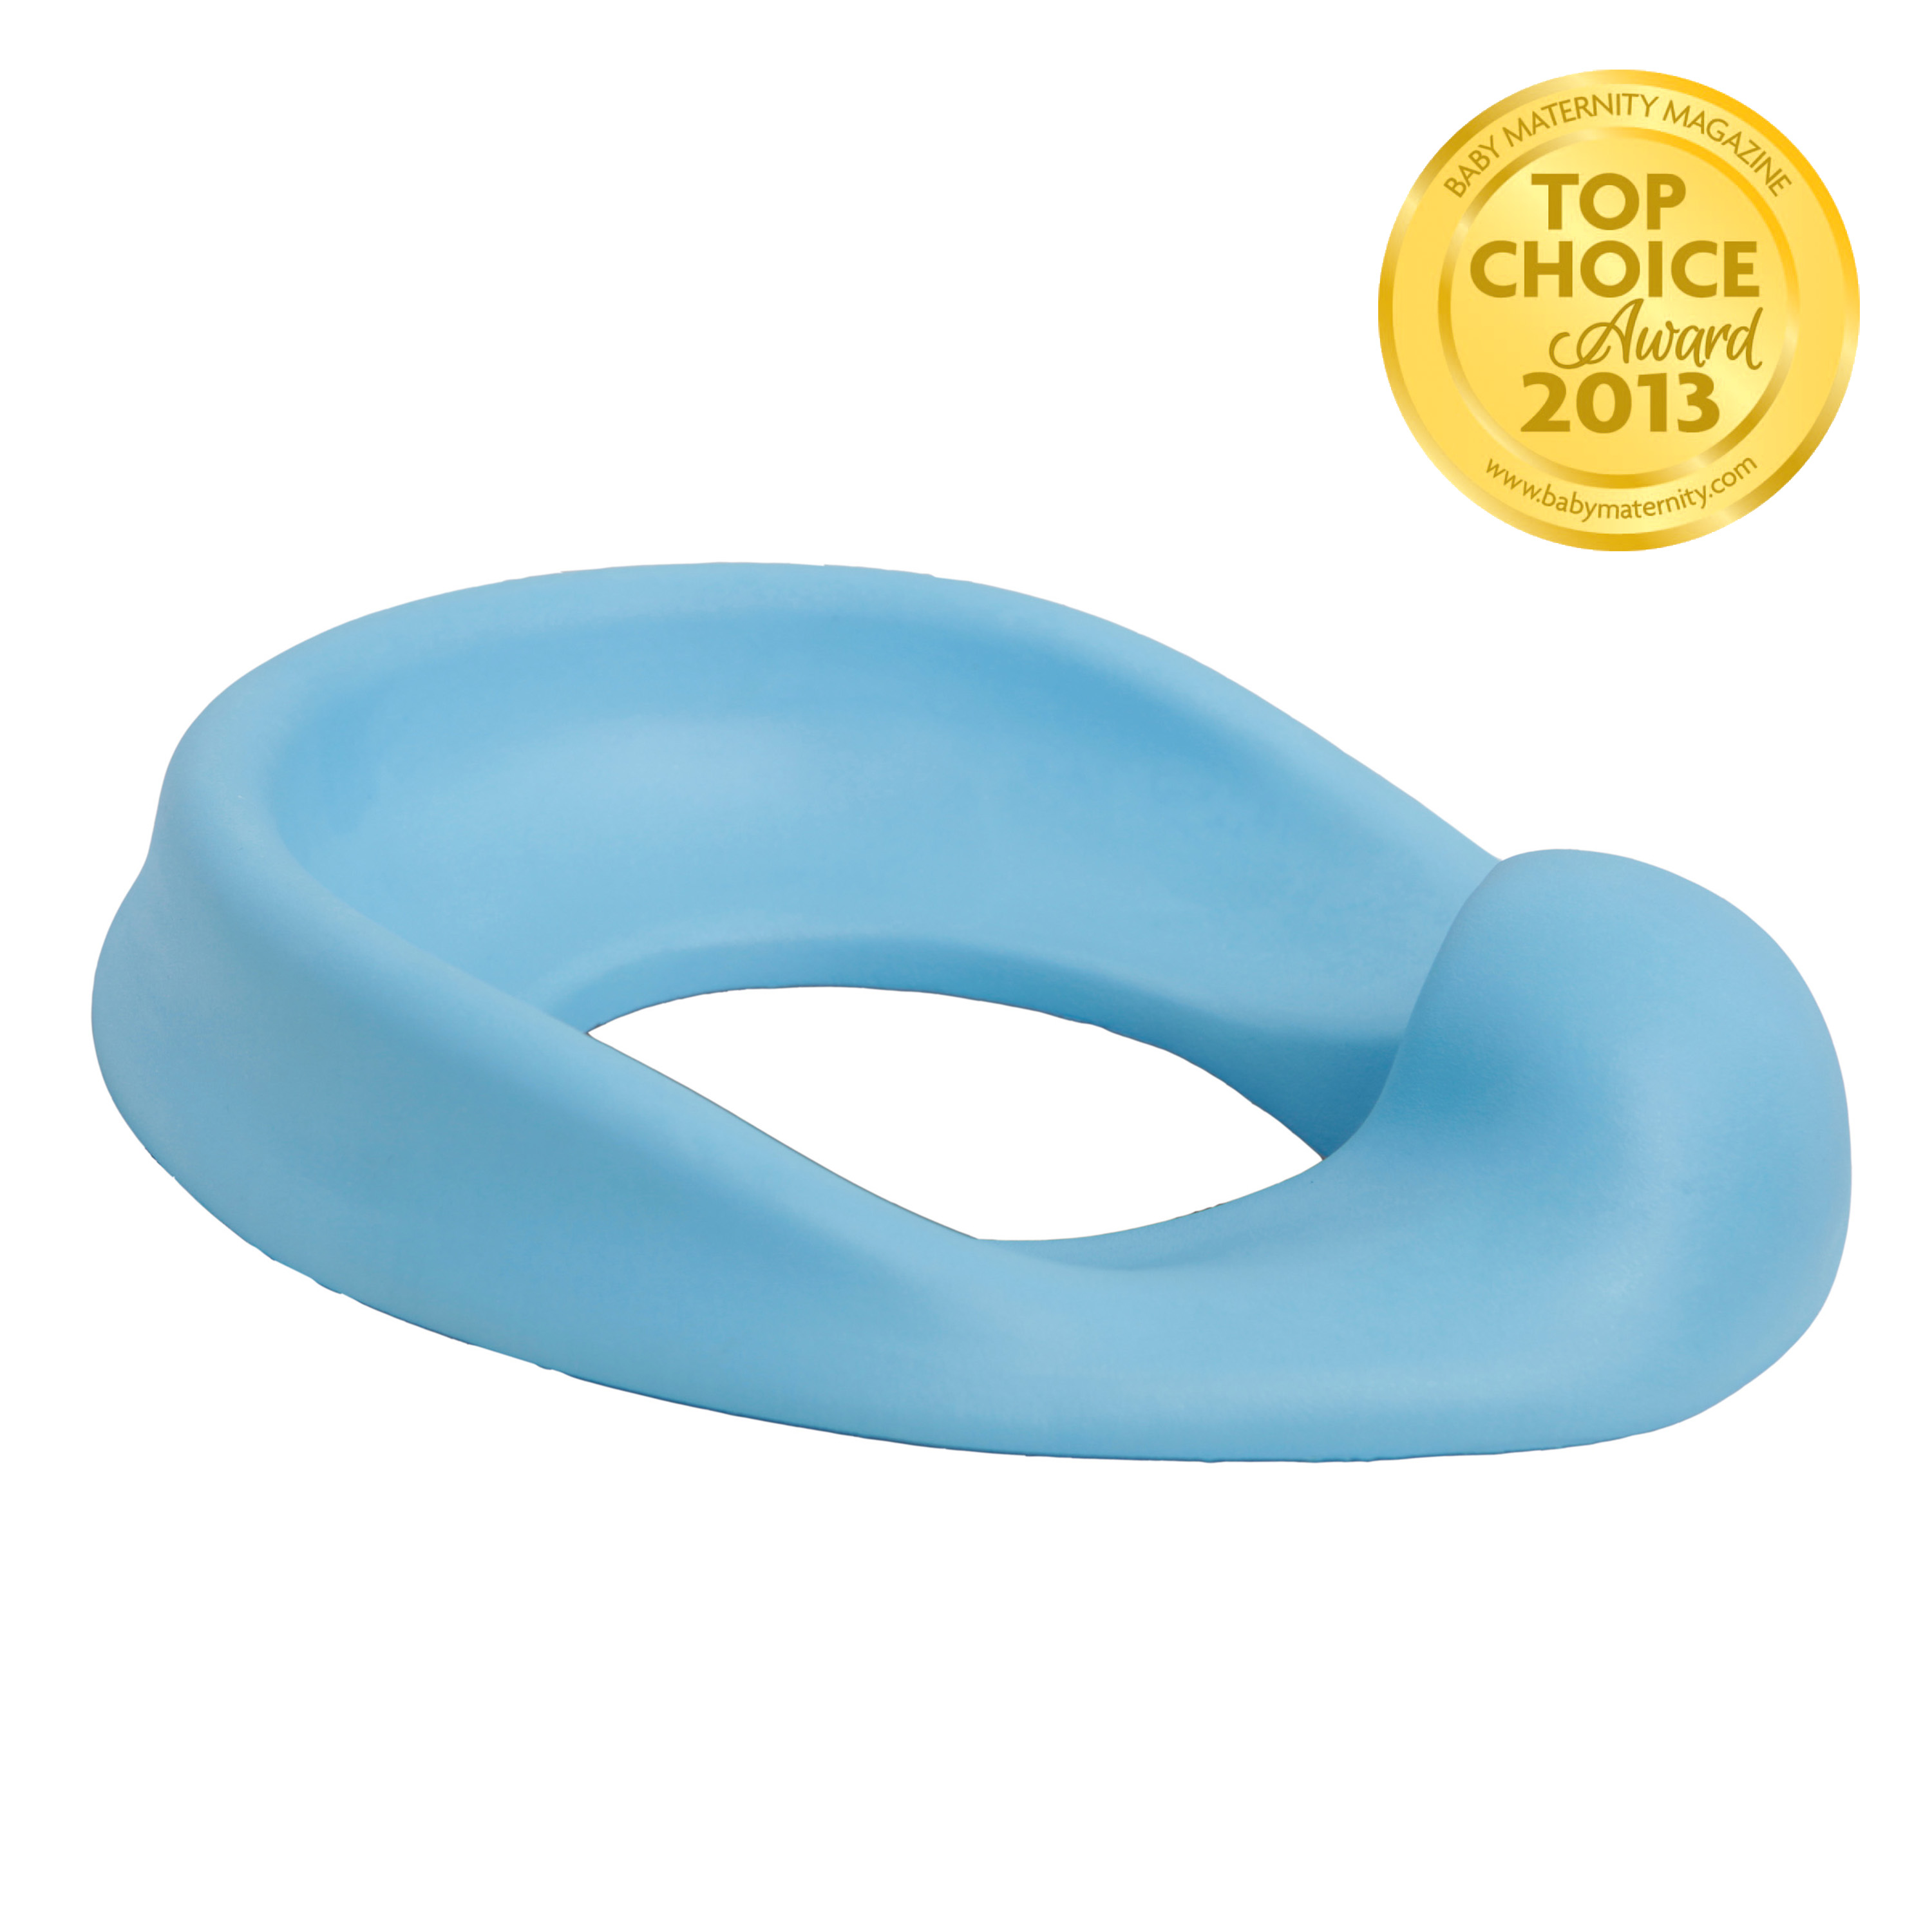 Dreambaby Soft Touch Potty Seat, Blue